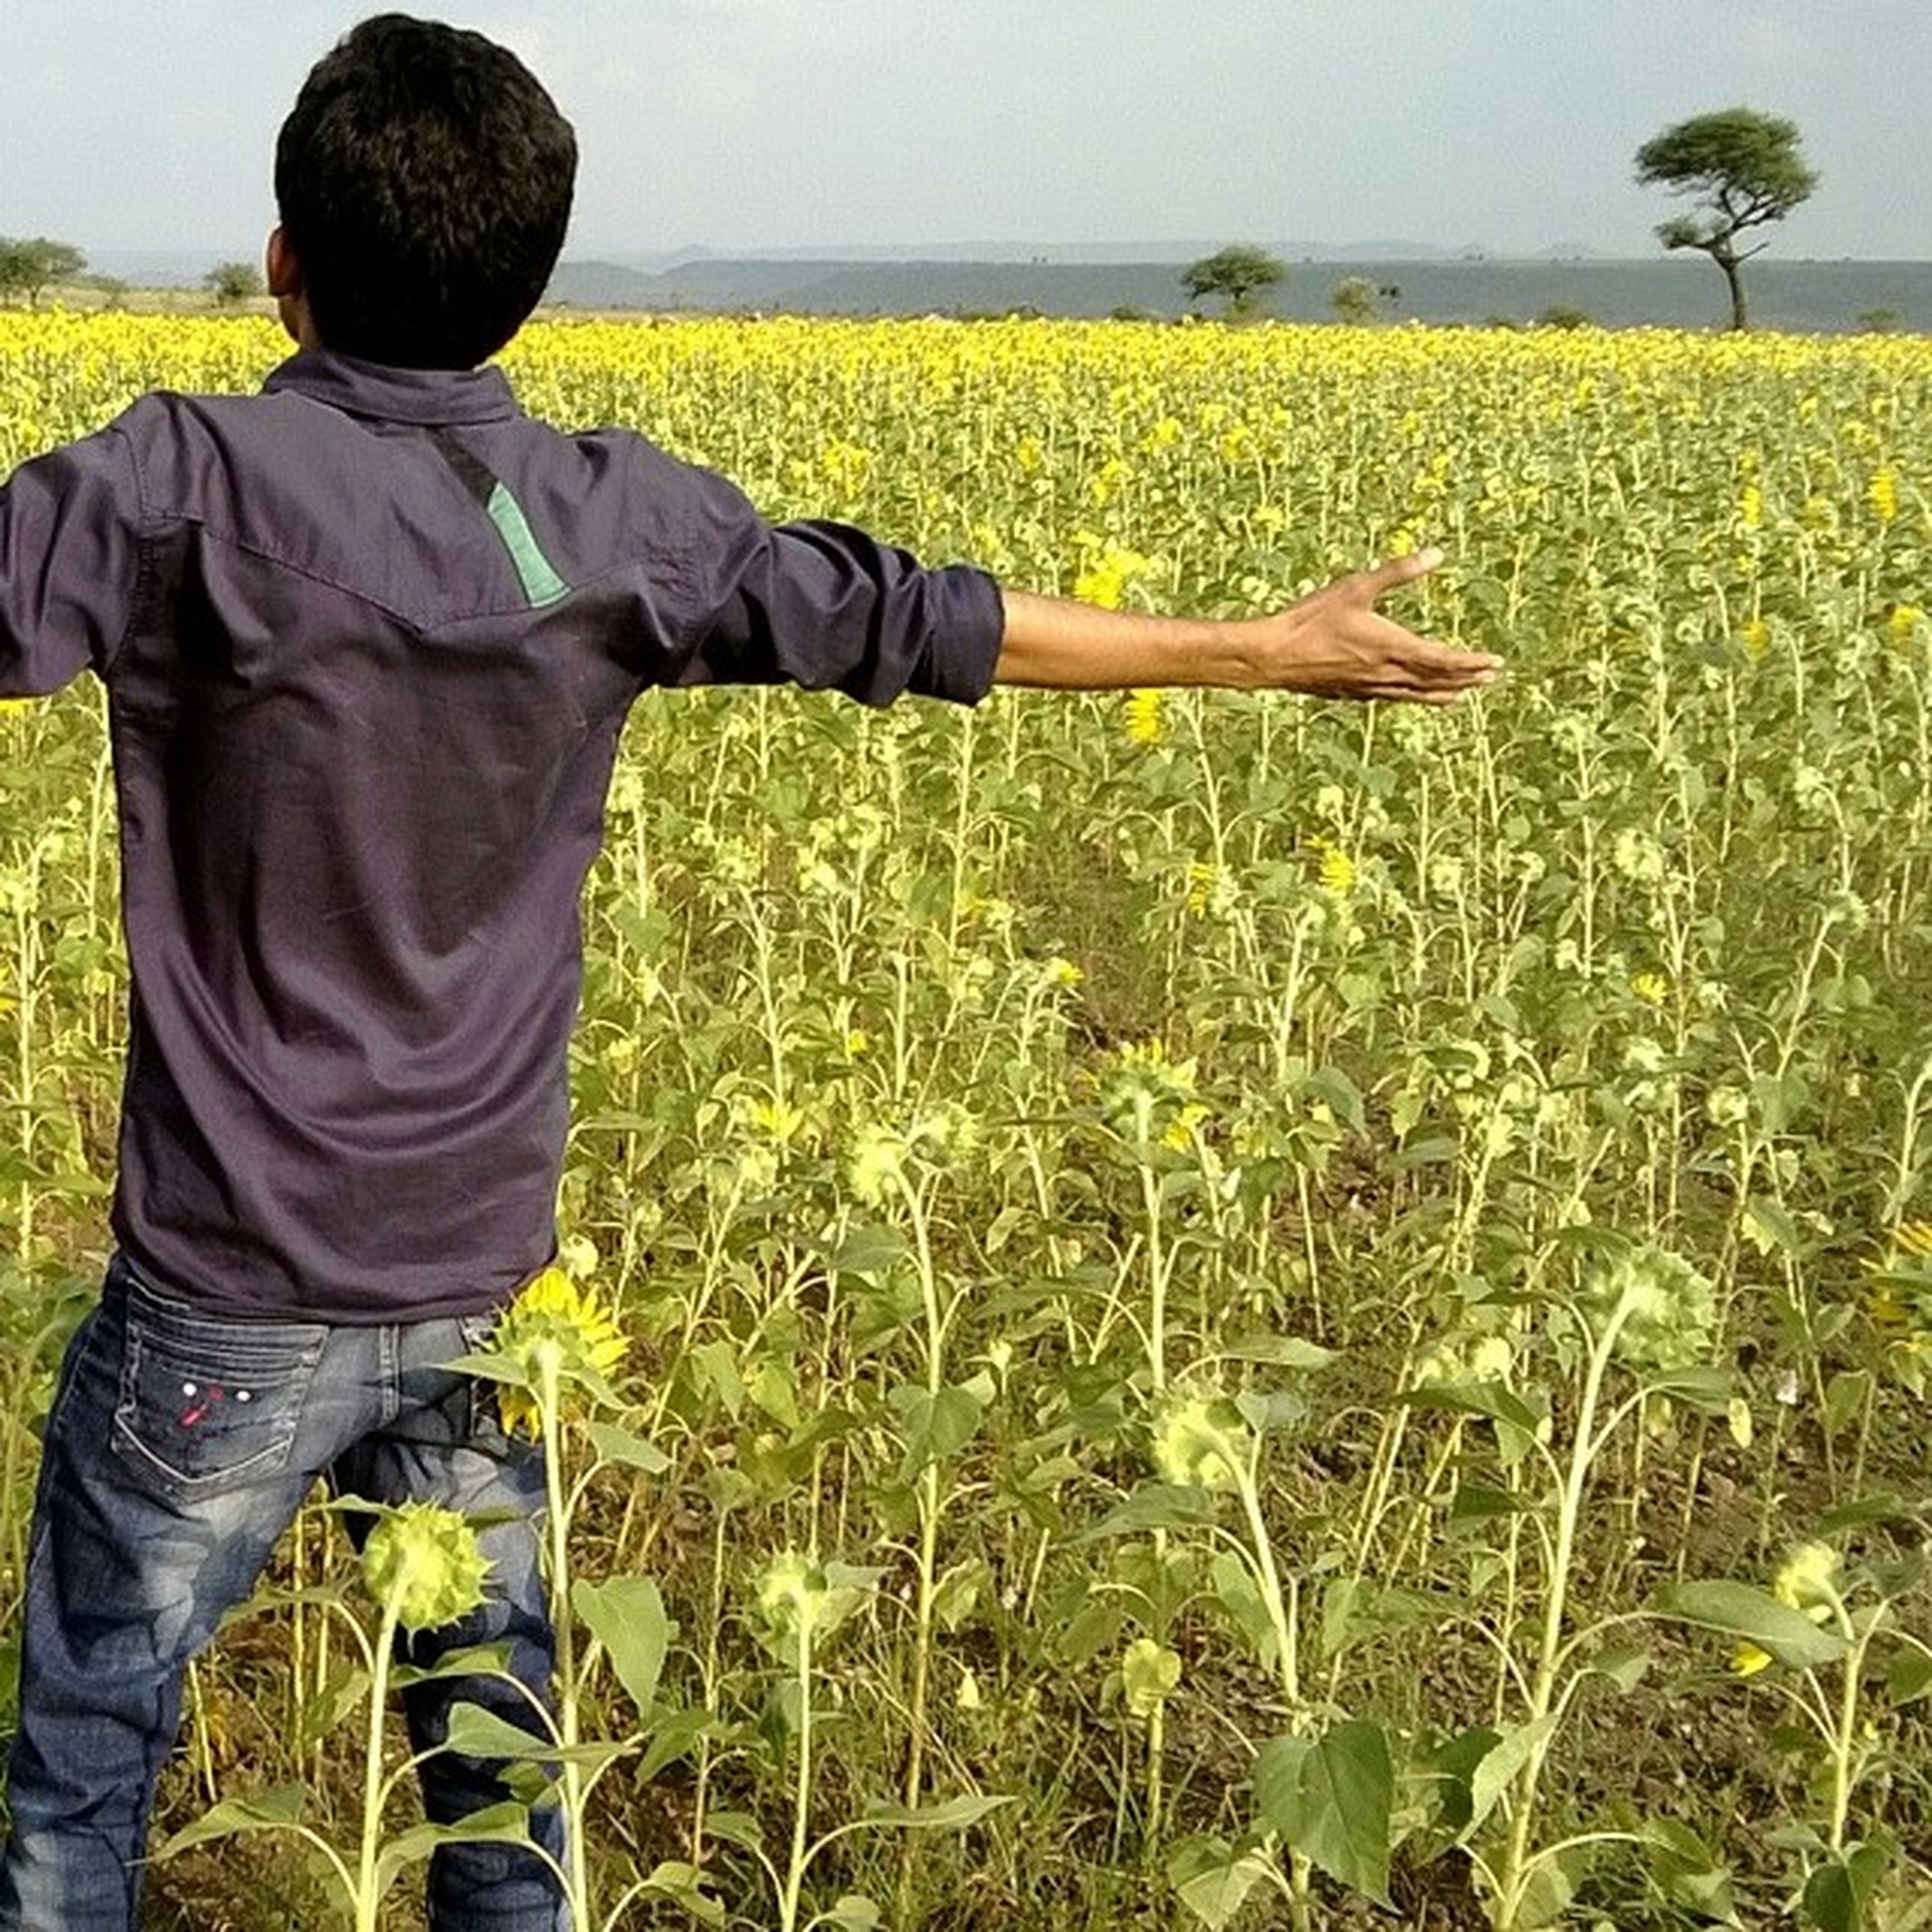 lifestyles, leisure activity, men, field, standing, agriculture, rear view, casual clothing, holding, grass, rural scene, yellow, growth, landscape, plant, green color, nature, farm